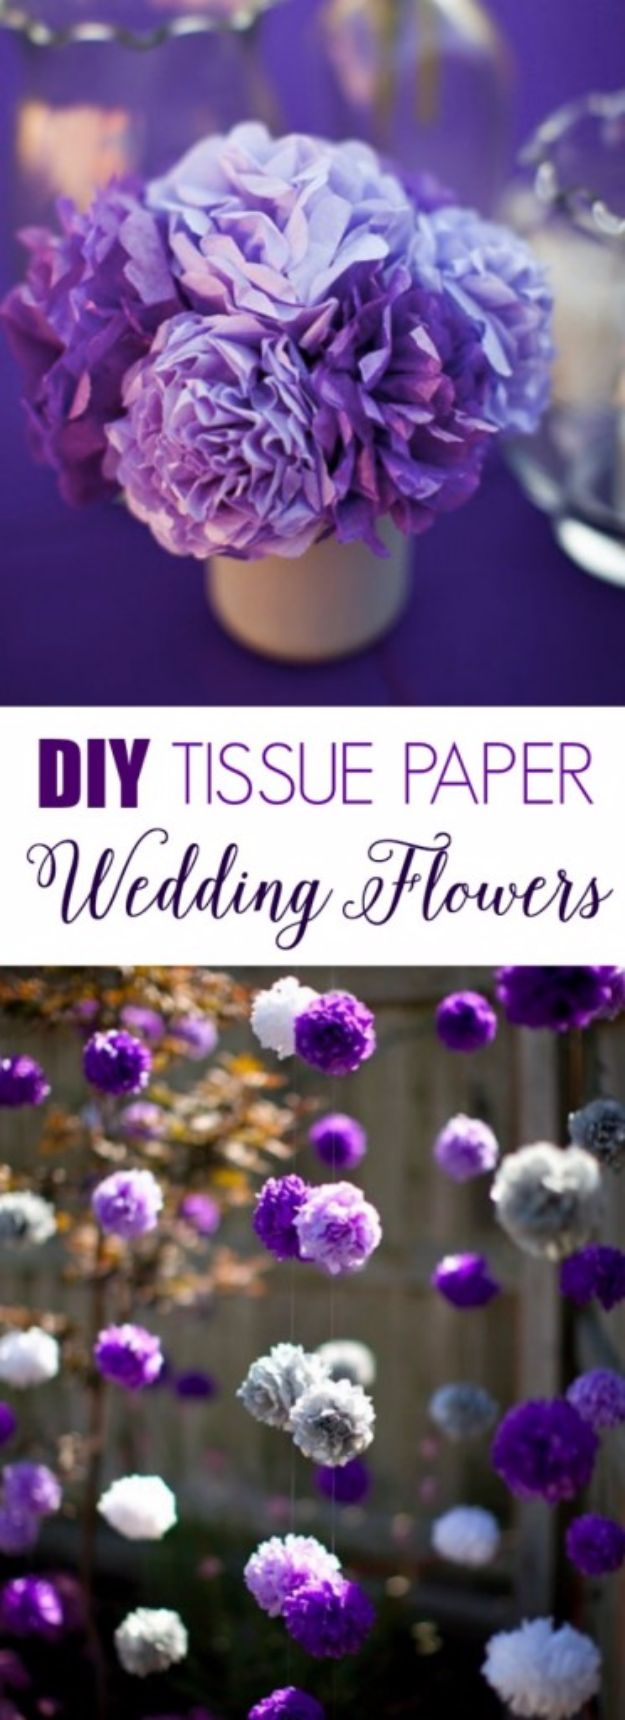 DIY Wedding Decor - DIY Tissue Paper Flowers - Easy and Cheap Project Ideas with Things Found in Dollar Stores - Simple and Creative Backdrops for Receptions On A Budget - Rustic, Elegant, and Vintage Paper Ideas for Centerpieces, and Vases http://diyjoy.com/cheap-wedding-decor-ideas